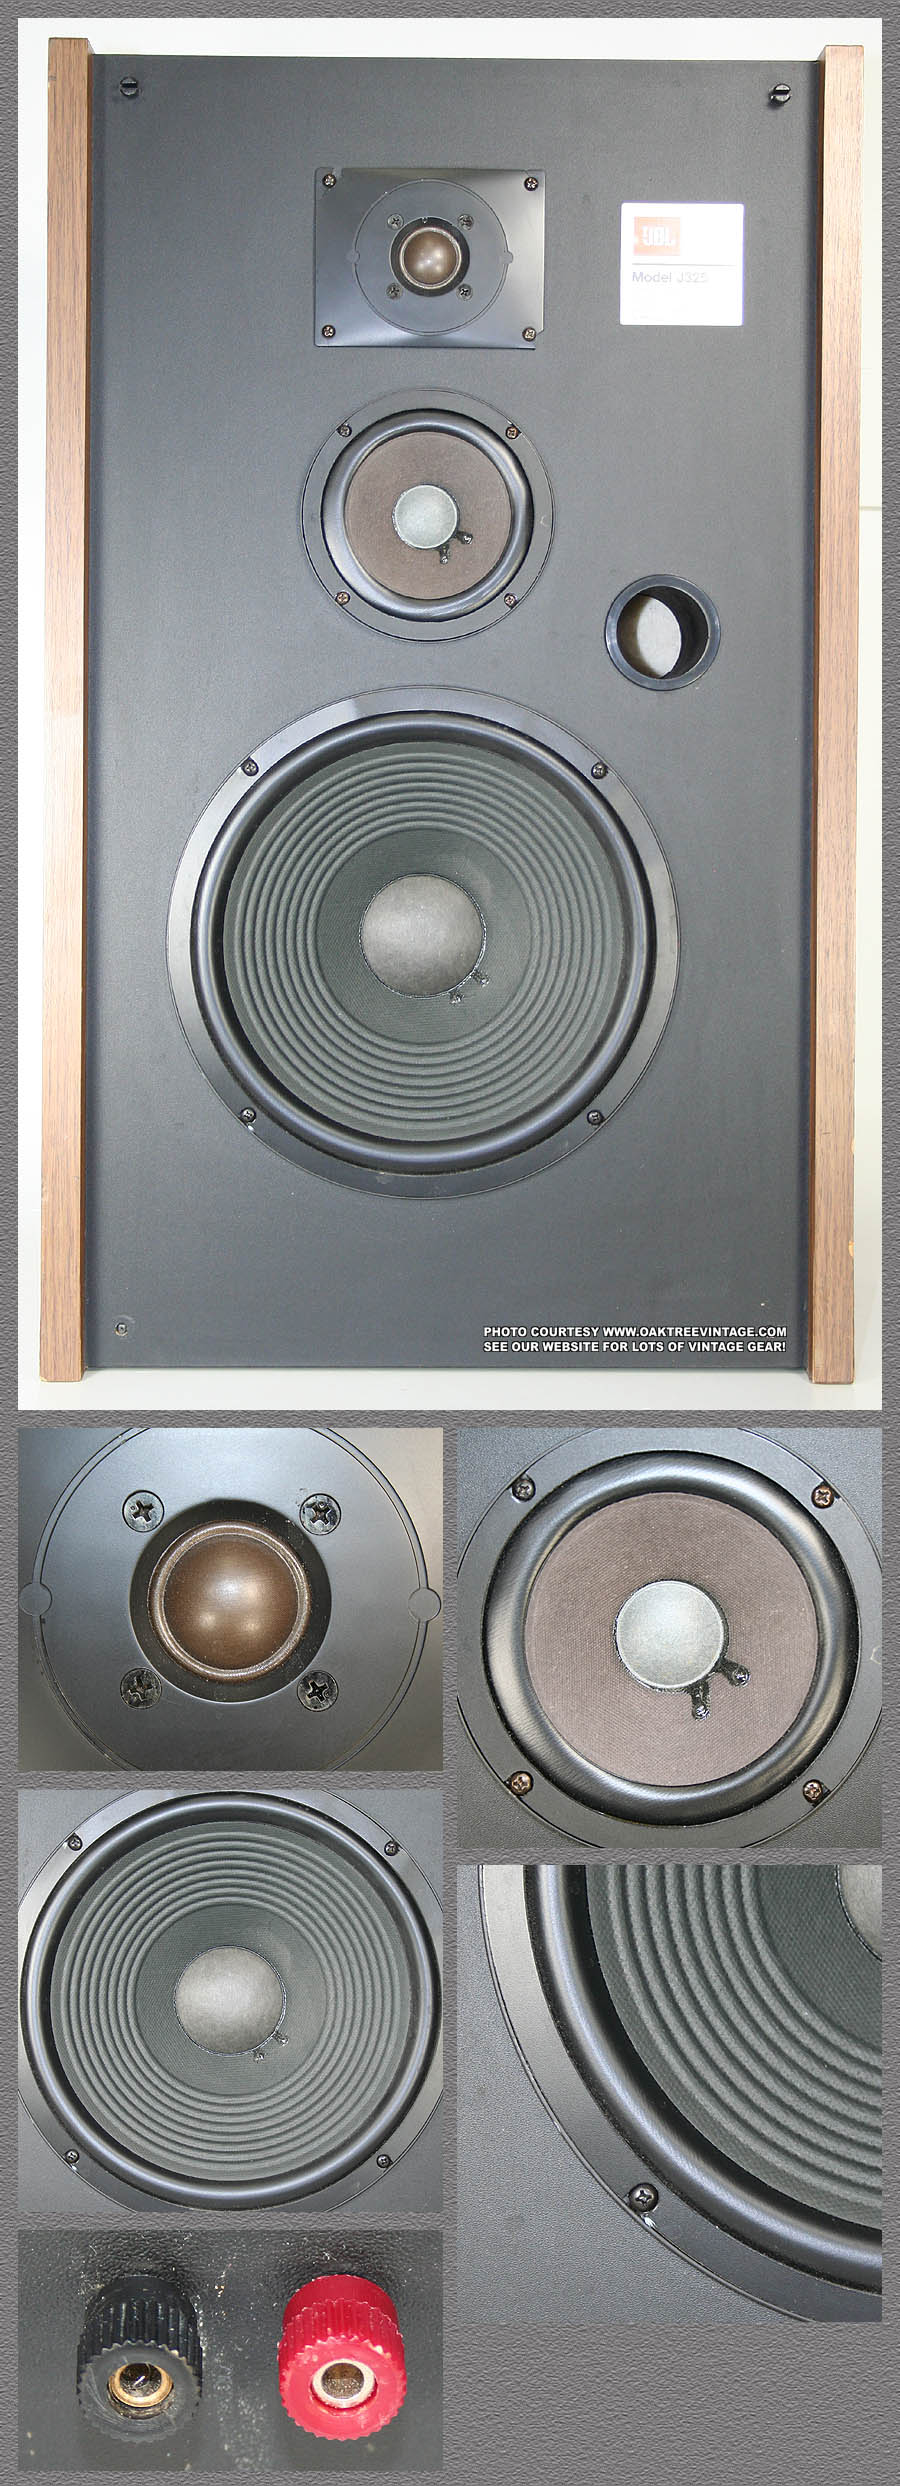 Jbl Replacement Speakers Drivers Parts Used Vintage Way Speaker Crossover Work Also 3 Diagrams